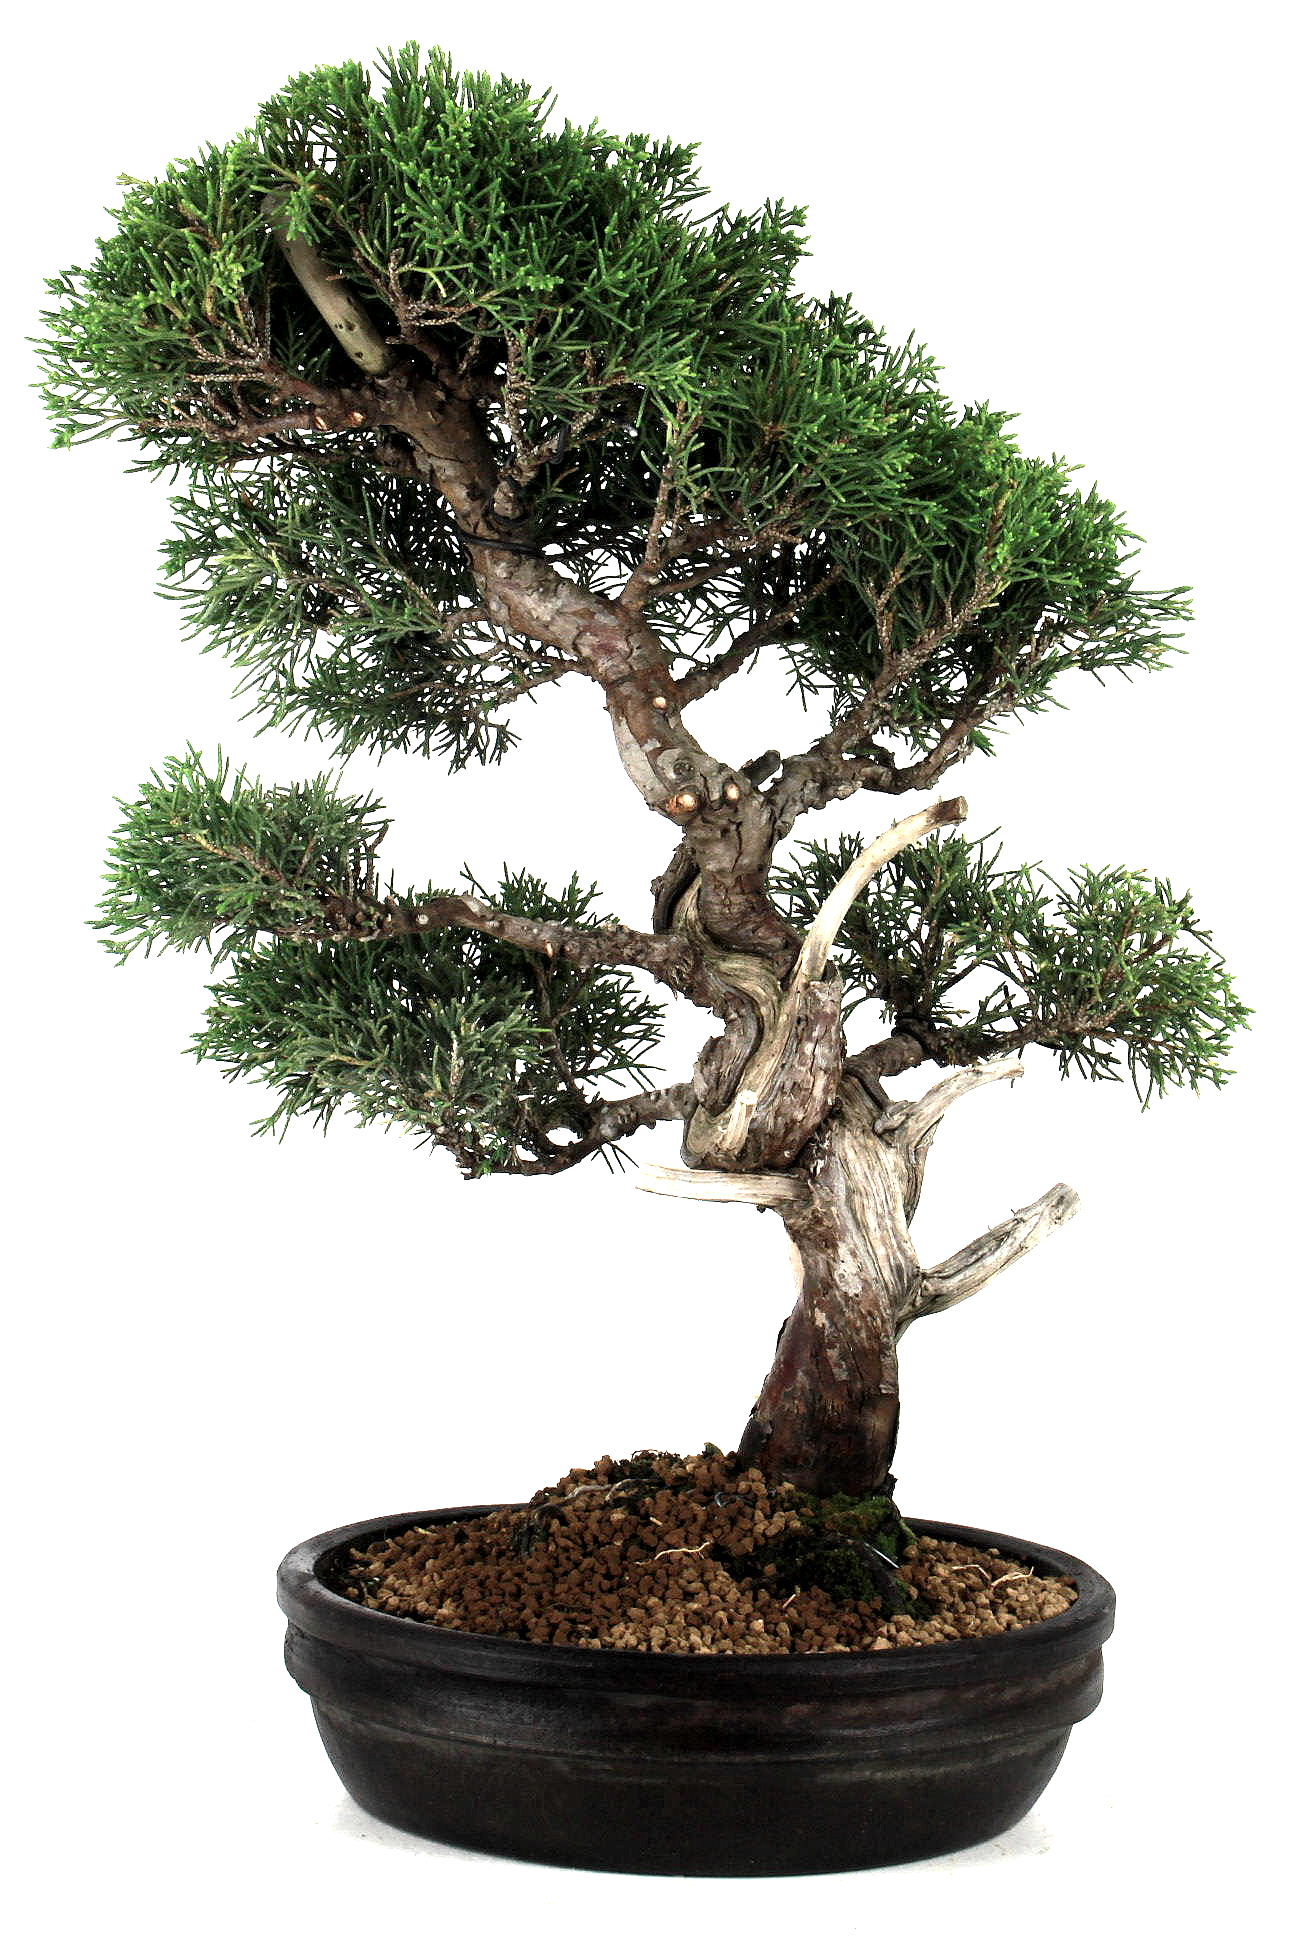 bonsai wacholder juniperus chinensis 42 cm r215 bei oyaki bonsai kaufen. Black Bedroom Furniture Sets. Home Design Ideas